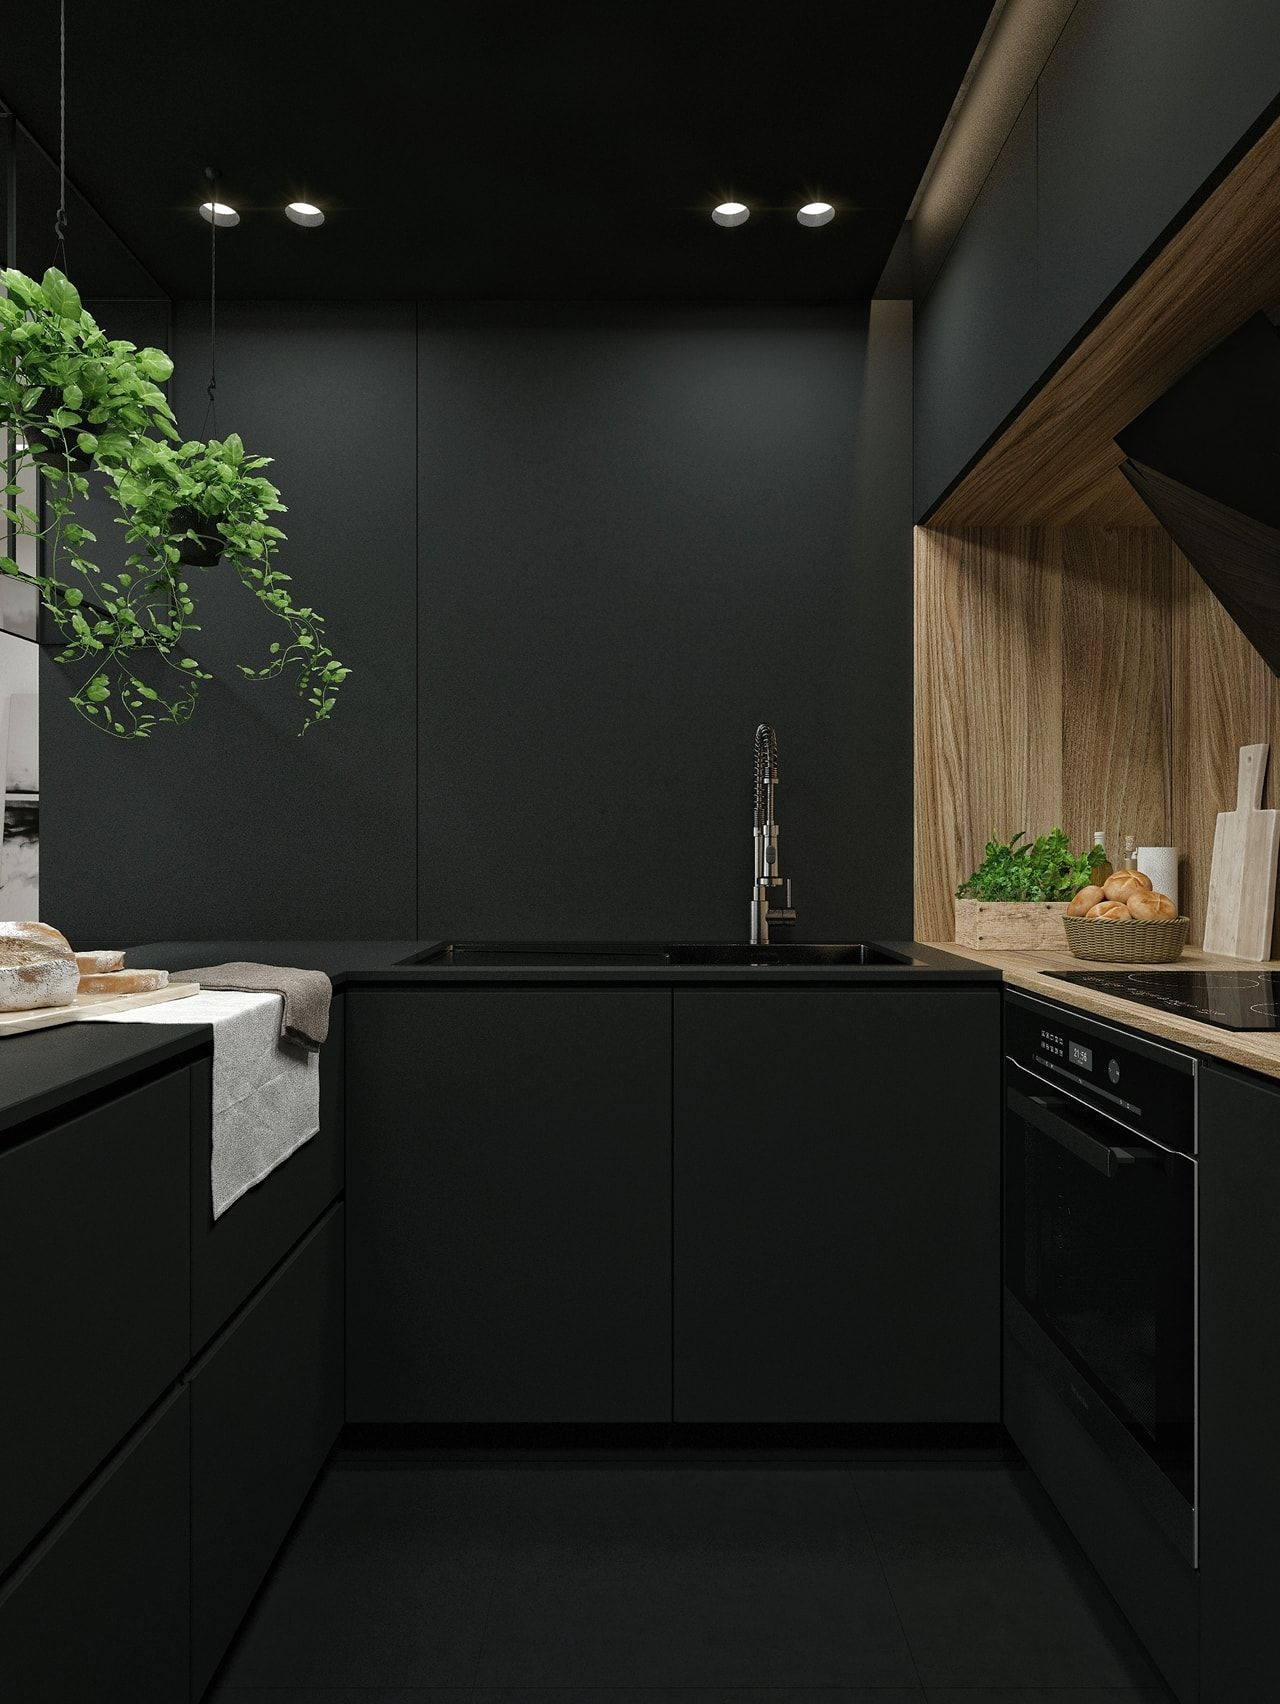 Black kitchen by id white architecture beast black and white interior design ideas